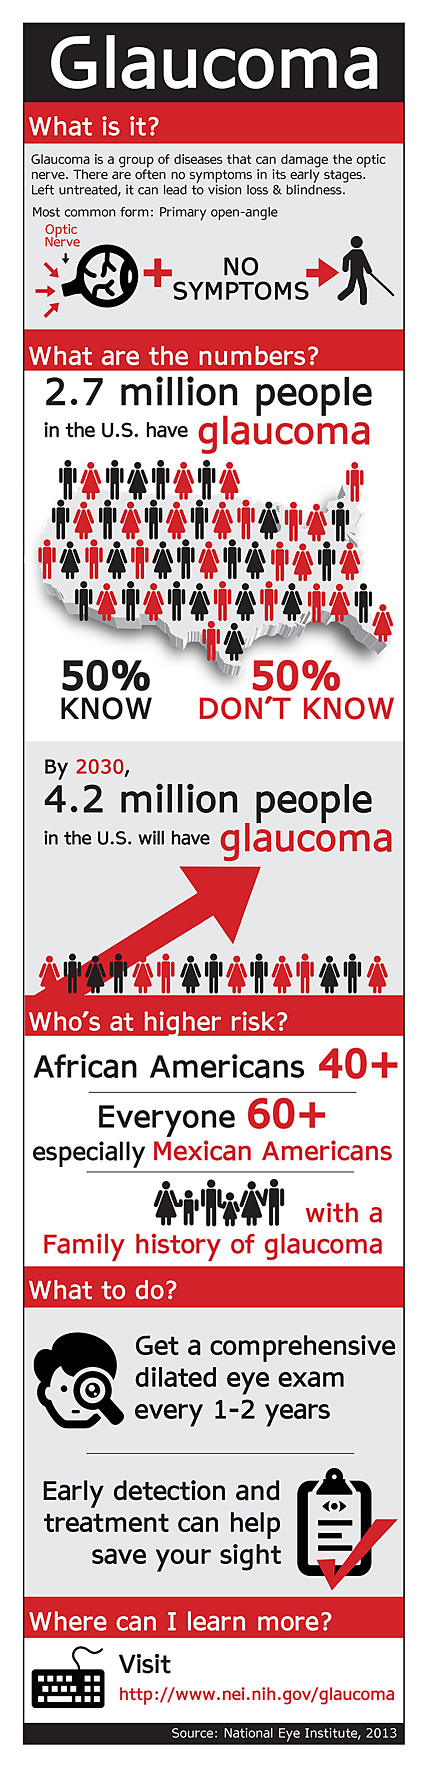 Infographic on Glaucoma